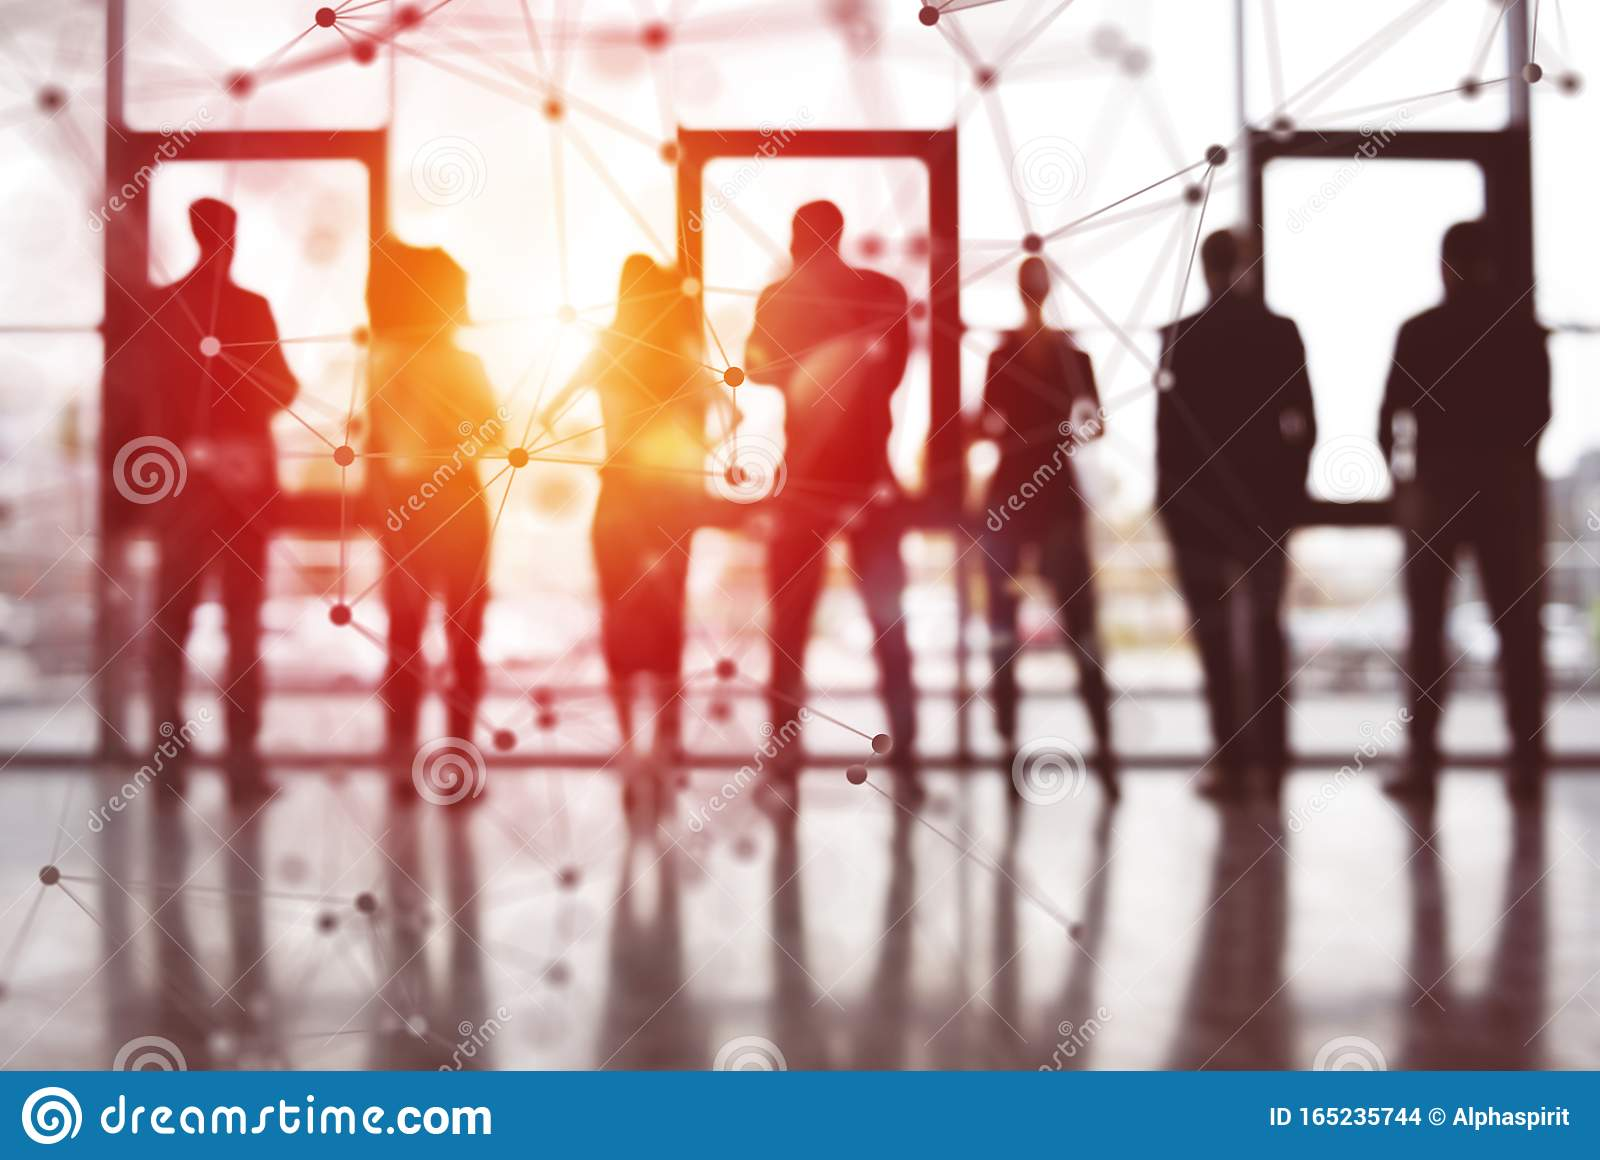 Concept background with business people silhouette looking out of the window. Double exposure with network effetct